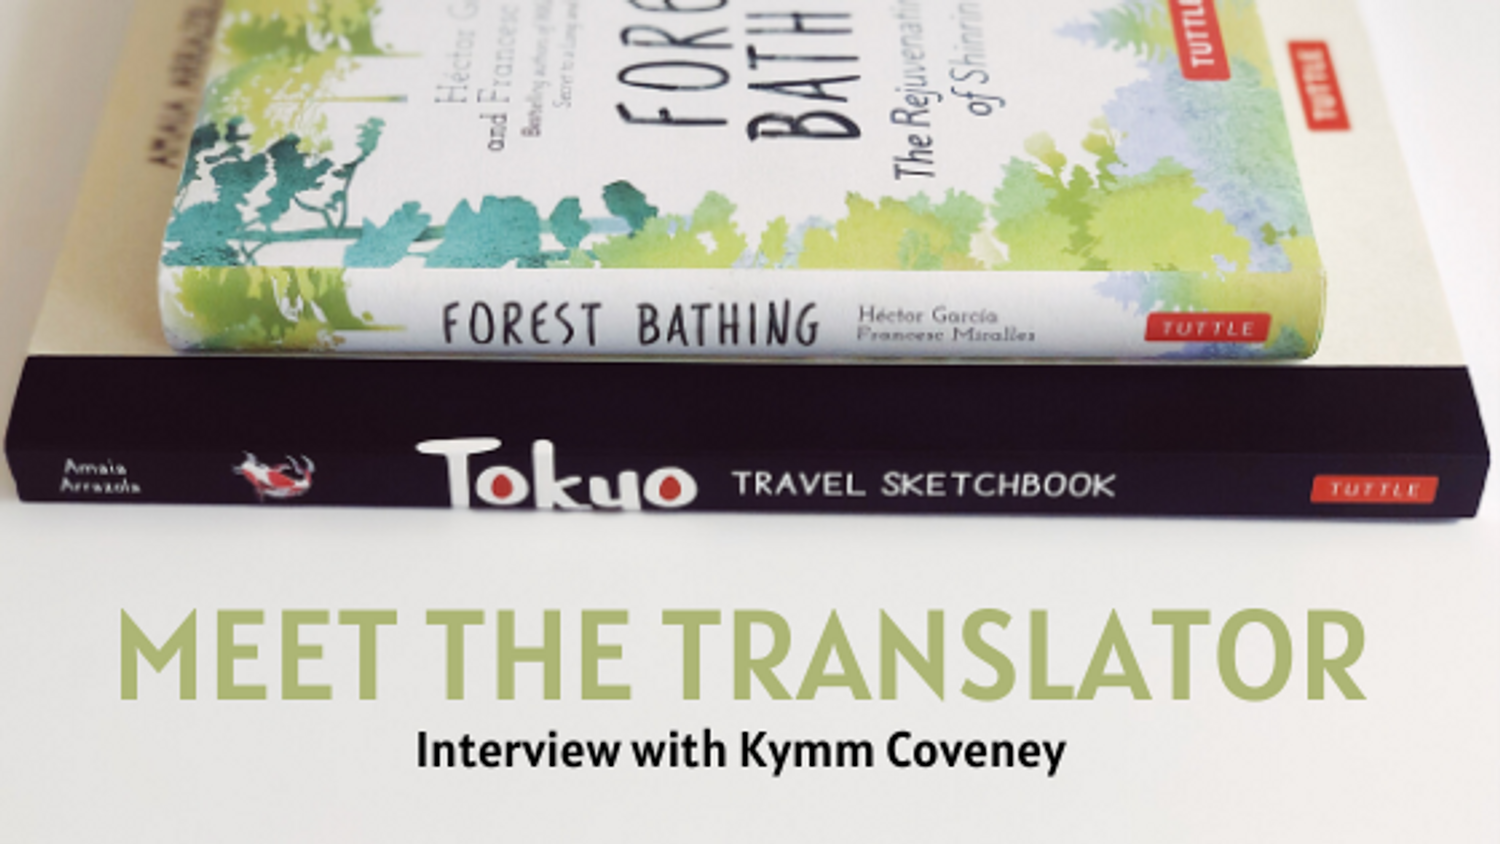 Meet the Translator: Interview with Kymm Coveney